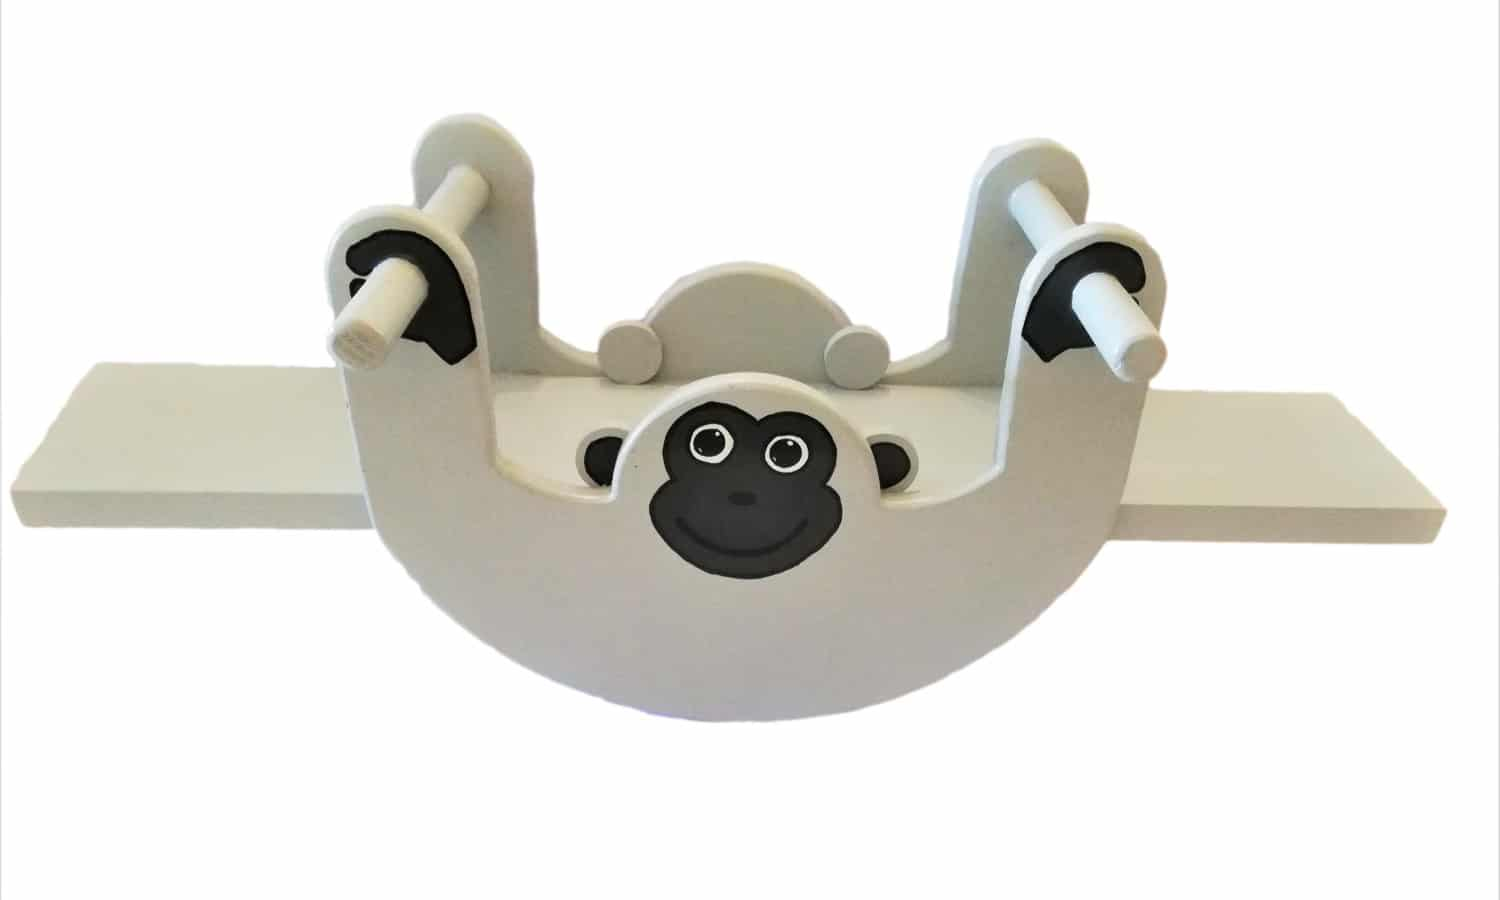 Monkey Rocker Seesaw - Pips and Moo - Children's Wooden Toys and Furniture